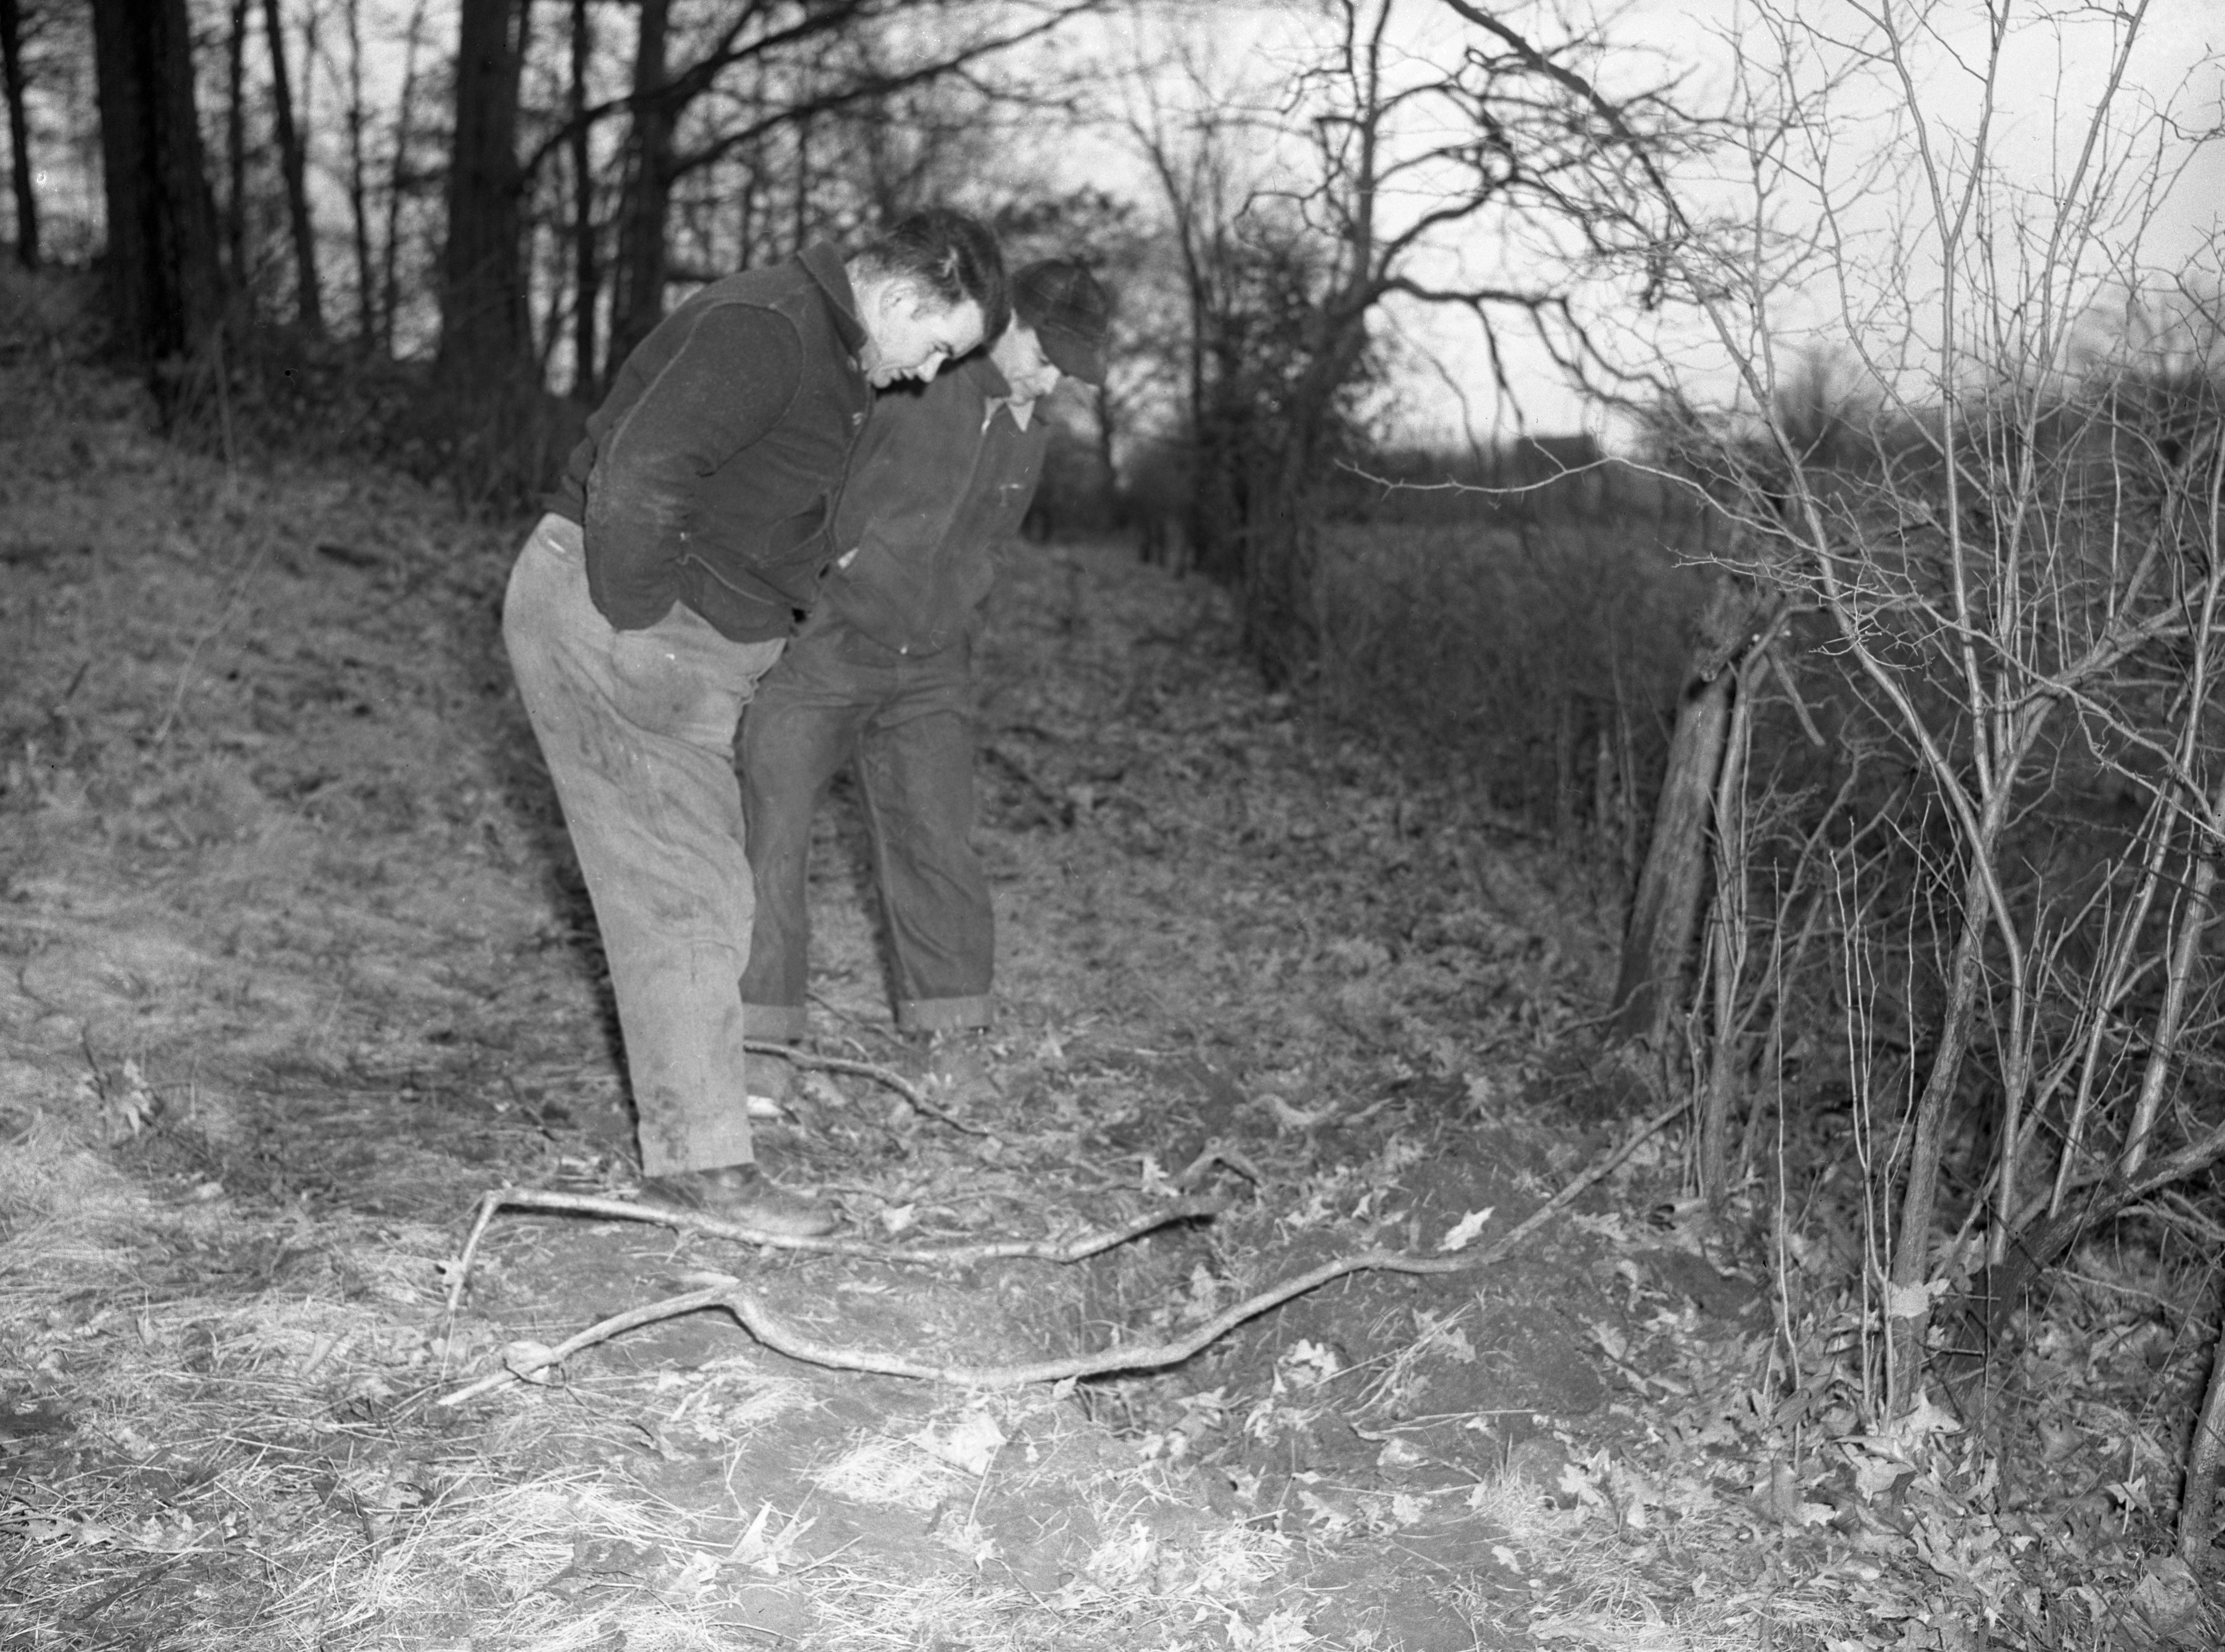 Searching for Evidence on Oscar Buss Farm Where Burned Body of Orville Wurster Was Found, March 1942 image